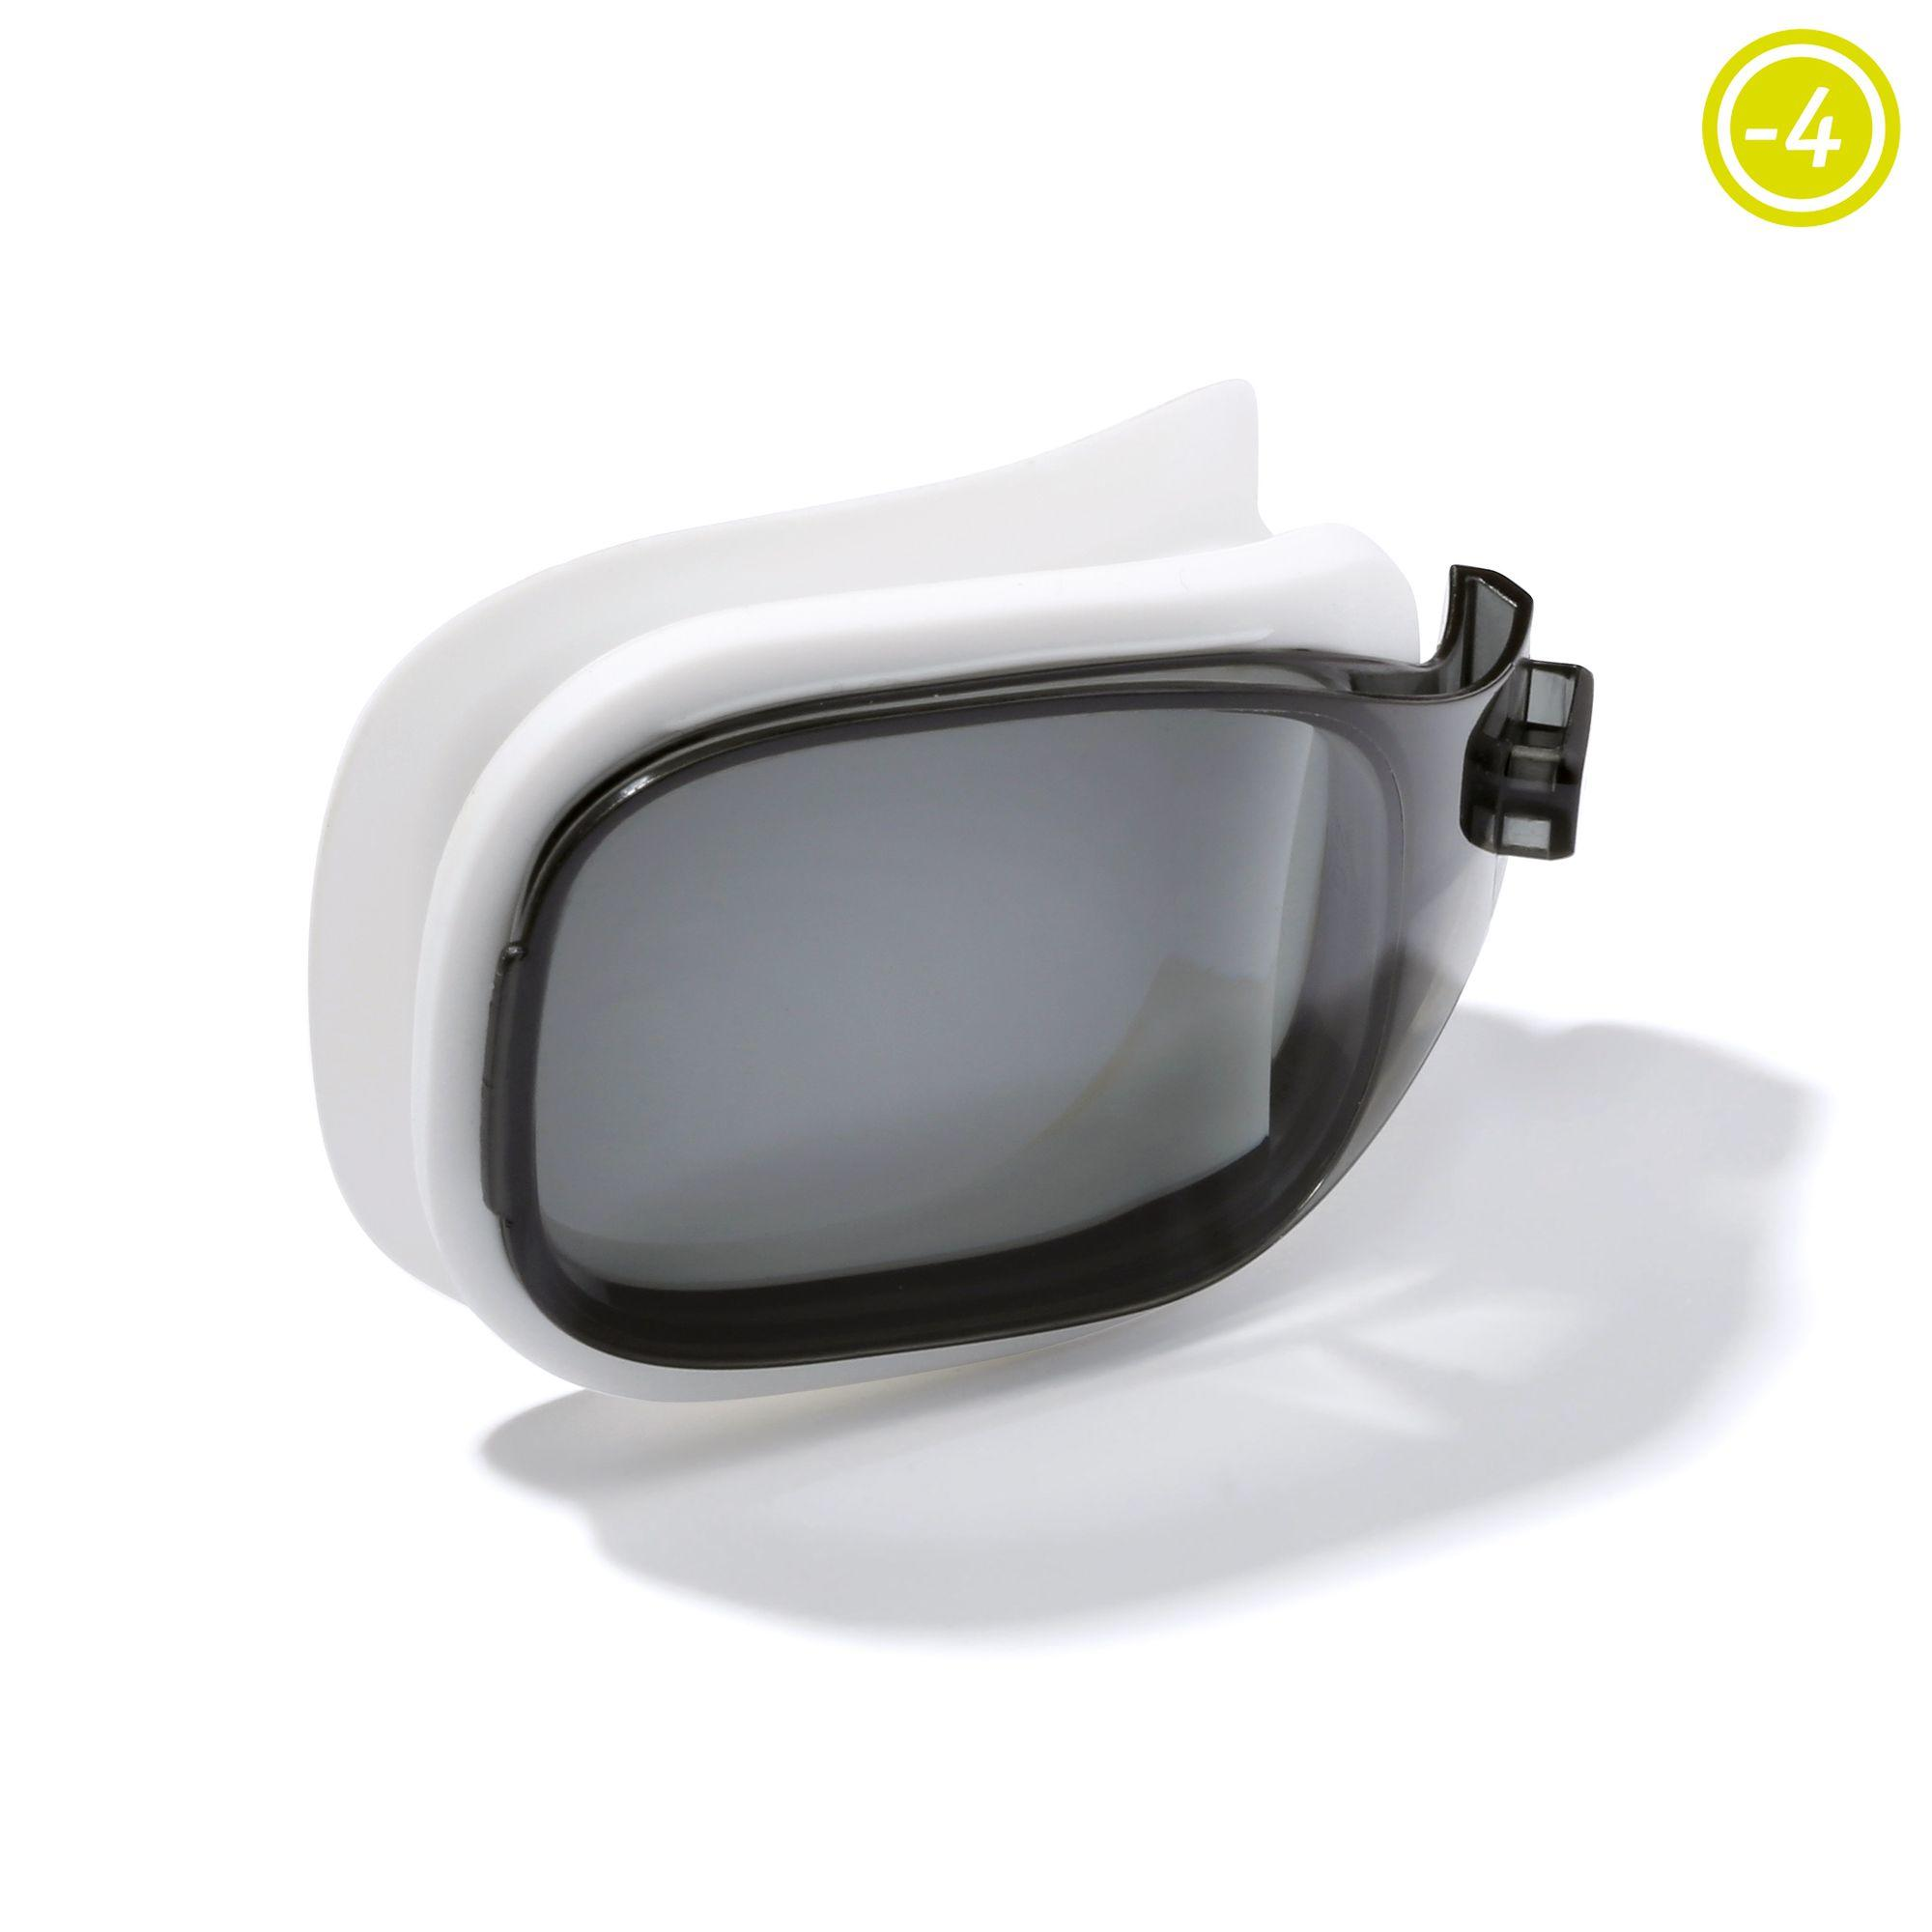 smoked lens for SELFIT 500 swimming goggles - Size L -4